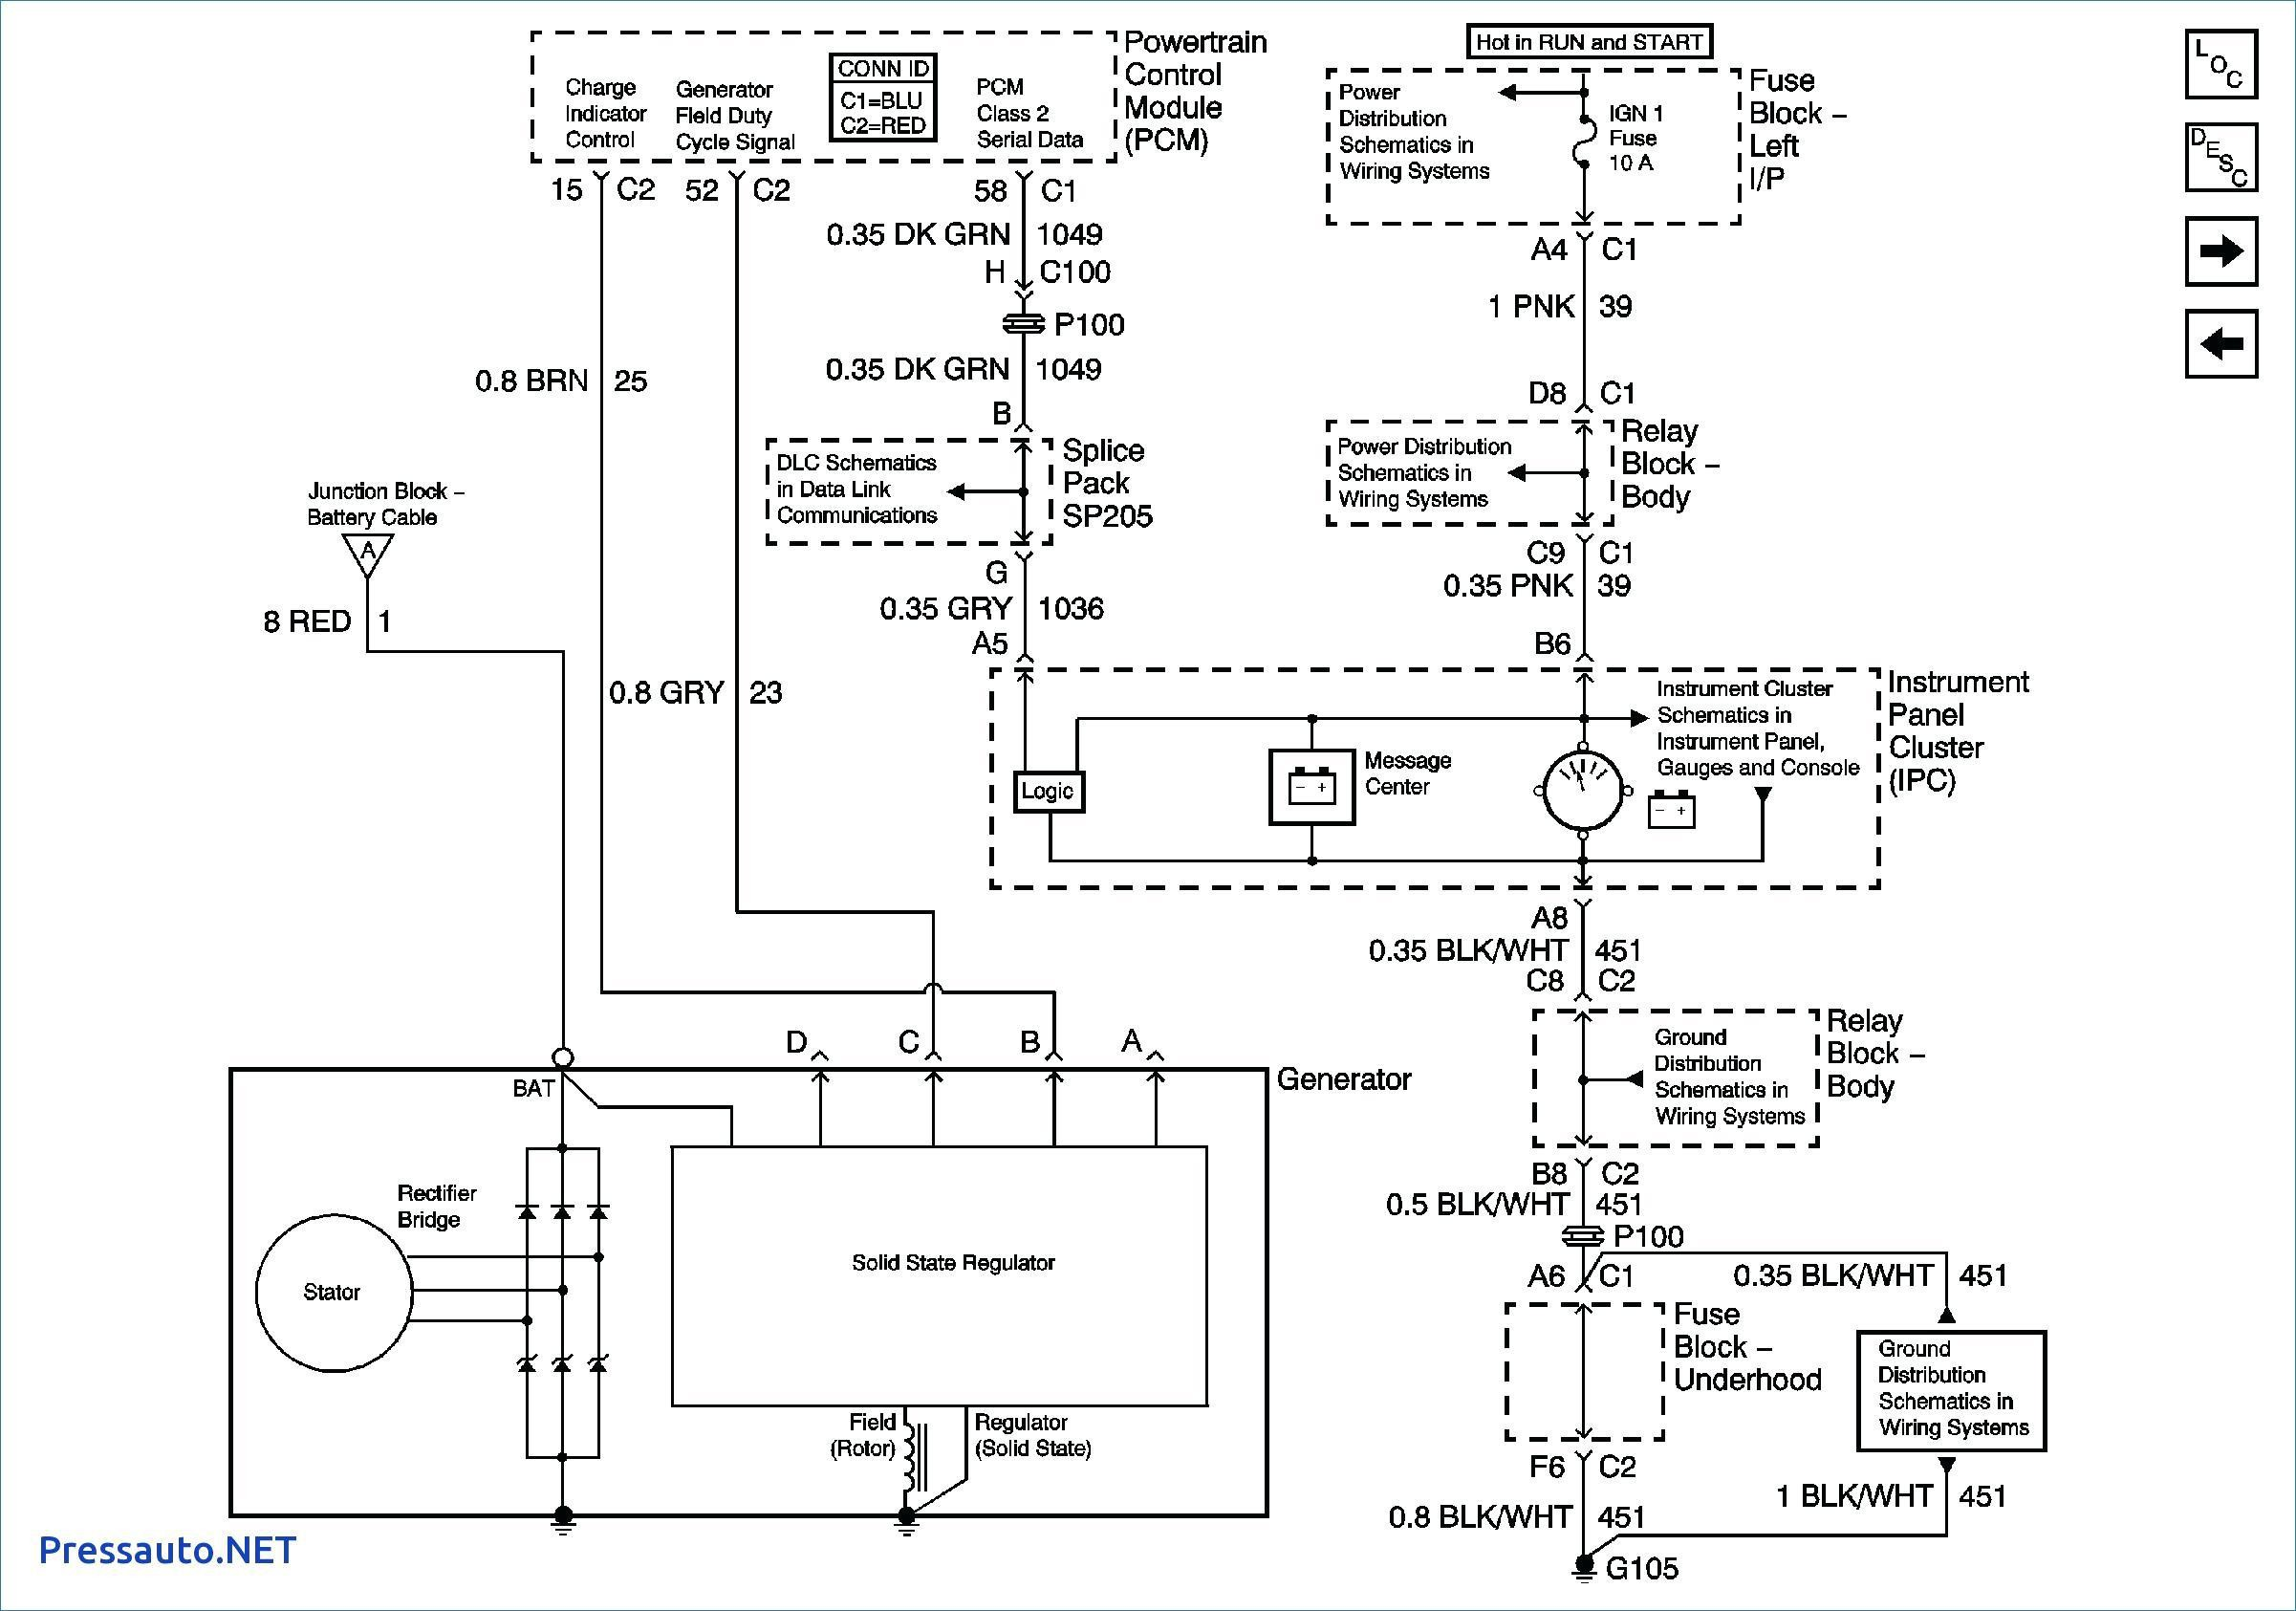 tag mer5752bab wiring schematic wiring diagrams best tag mer5752bab wiring schematic simple wiring diagram site tag mer5752bab wiring schematic